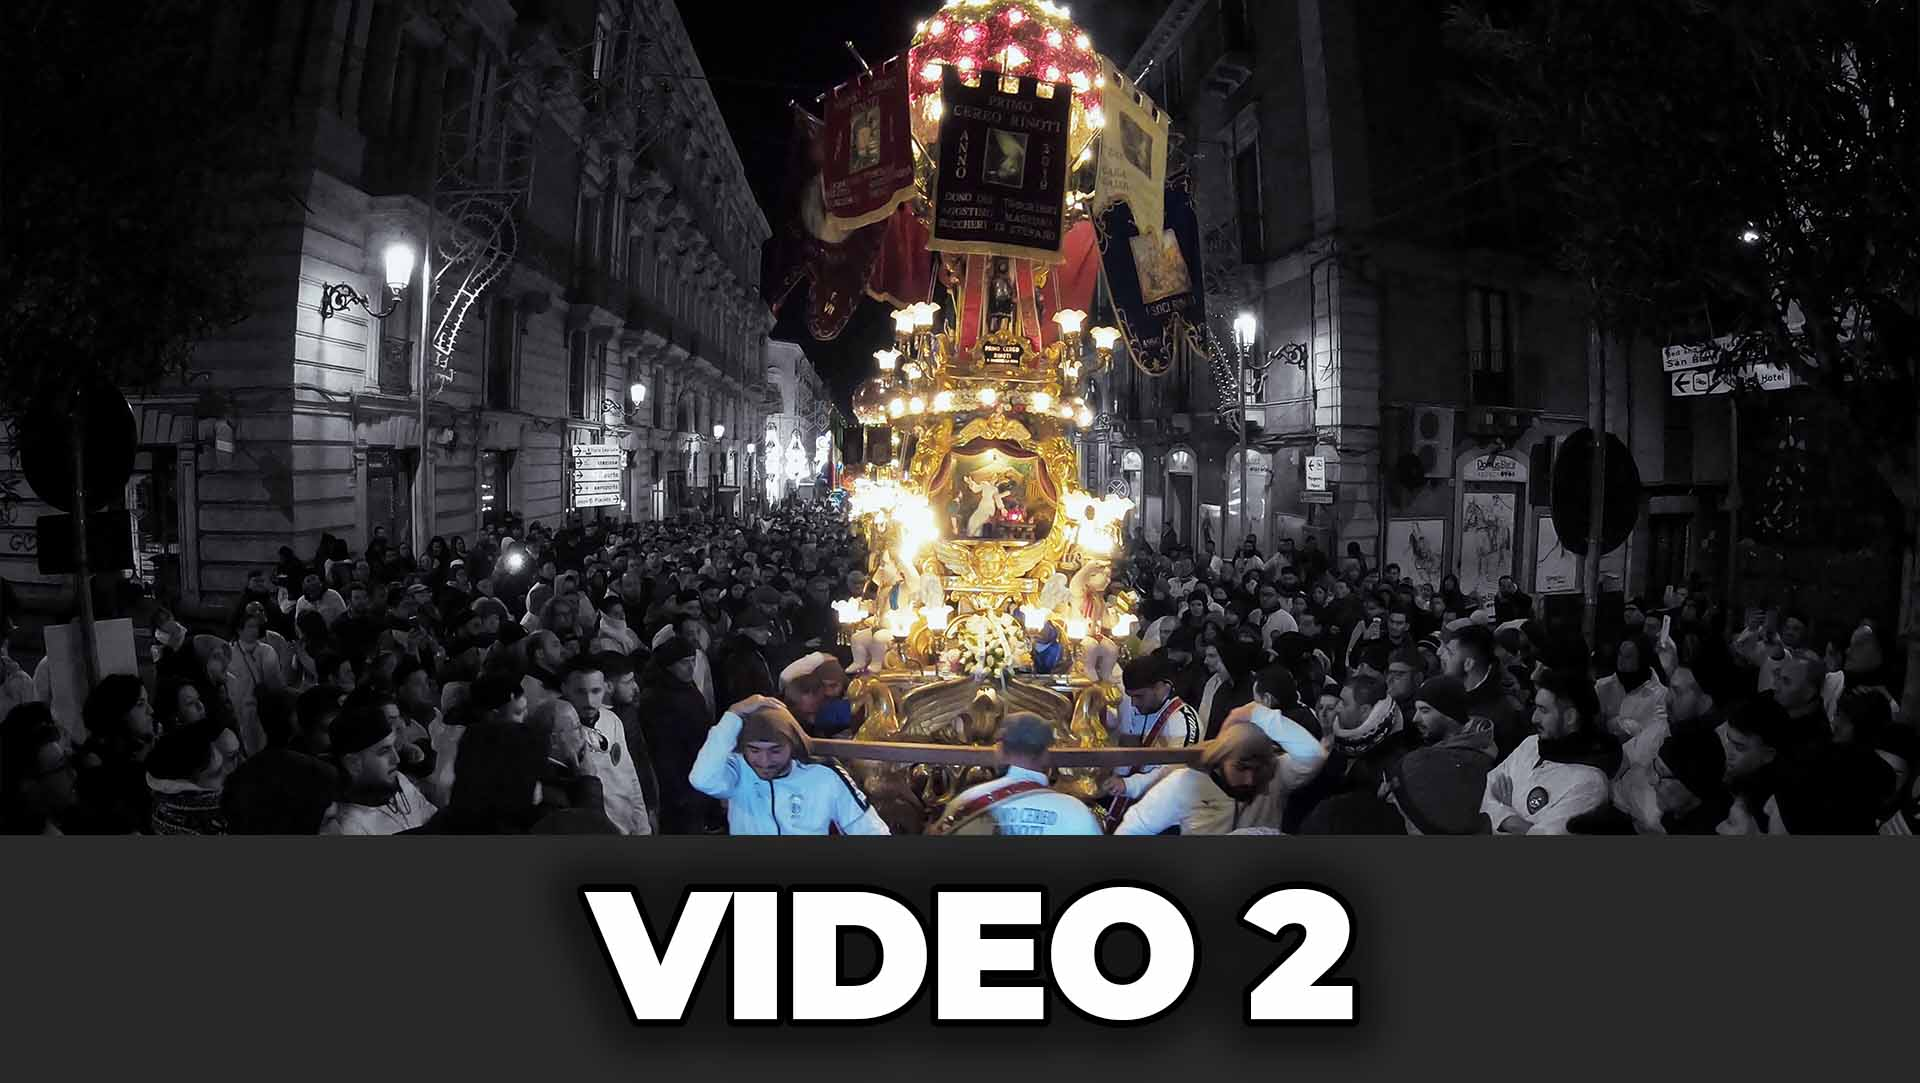 Copertina Video 2 - Documentario Sant'Agata 2019 - Ciclope film